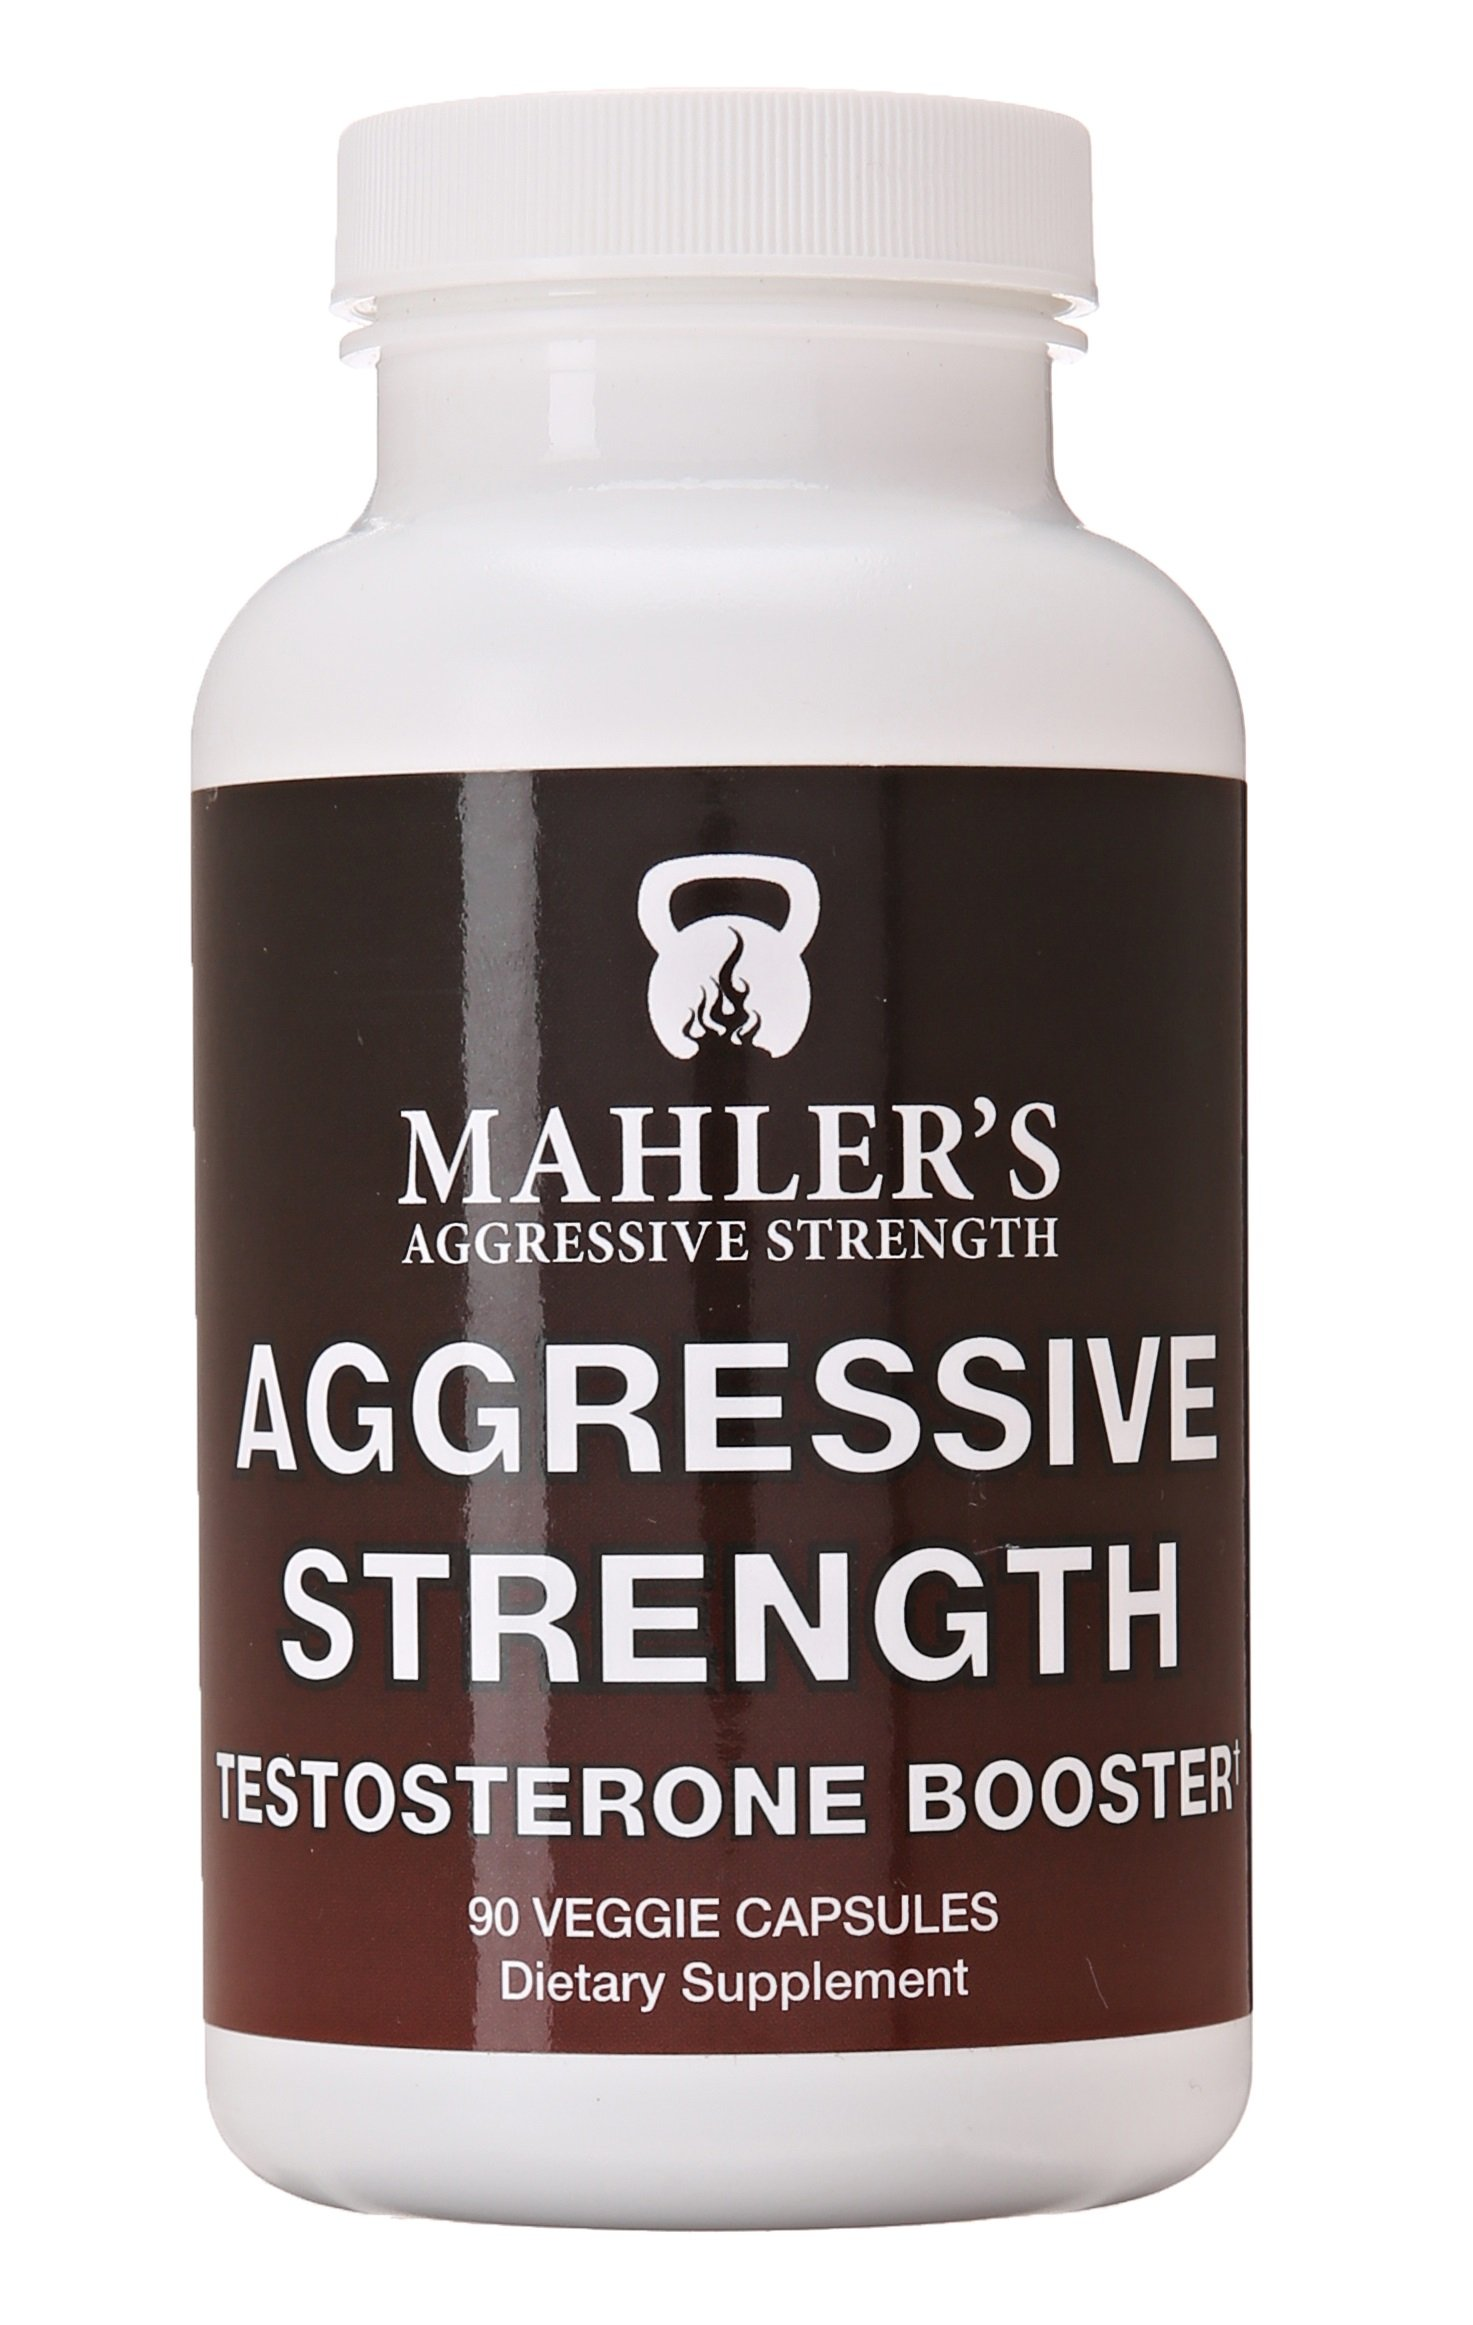 Mahler's Aggressive Strength Testosterone Booster, 90 capsules, 6 Week Supply by Mahler's Aggressive Strength (Image #1)